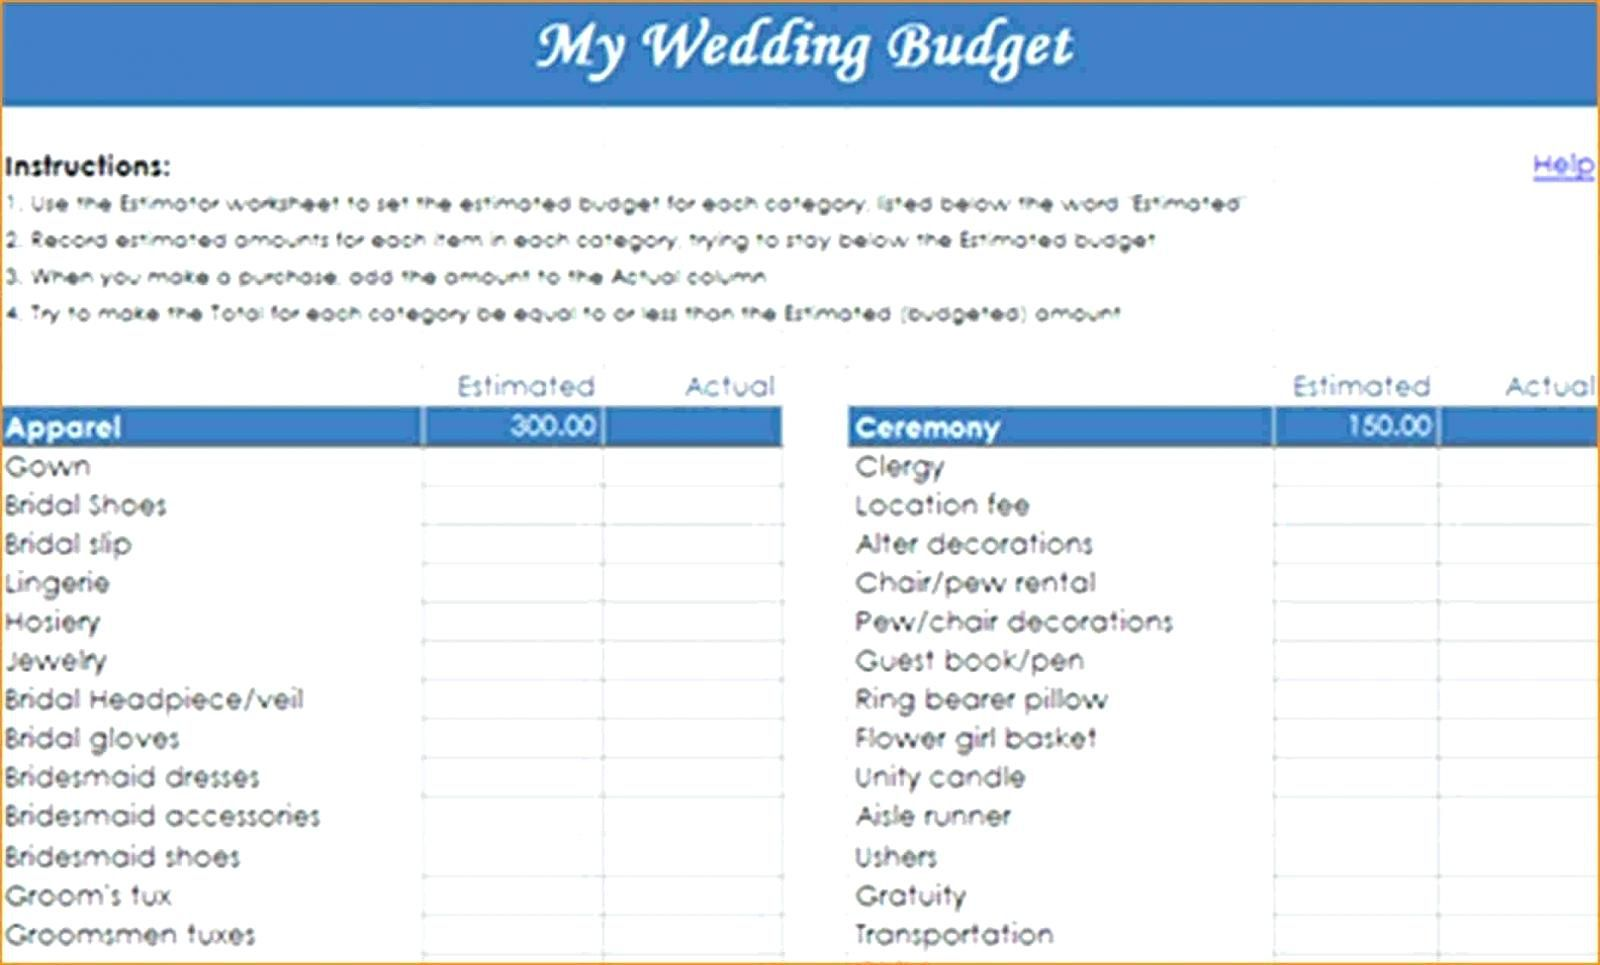 003 Simple Wedding Budget Template Excel High Resolution  South Africa Sample SpreadsheetFull